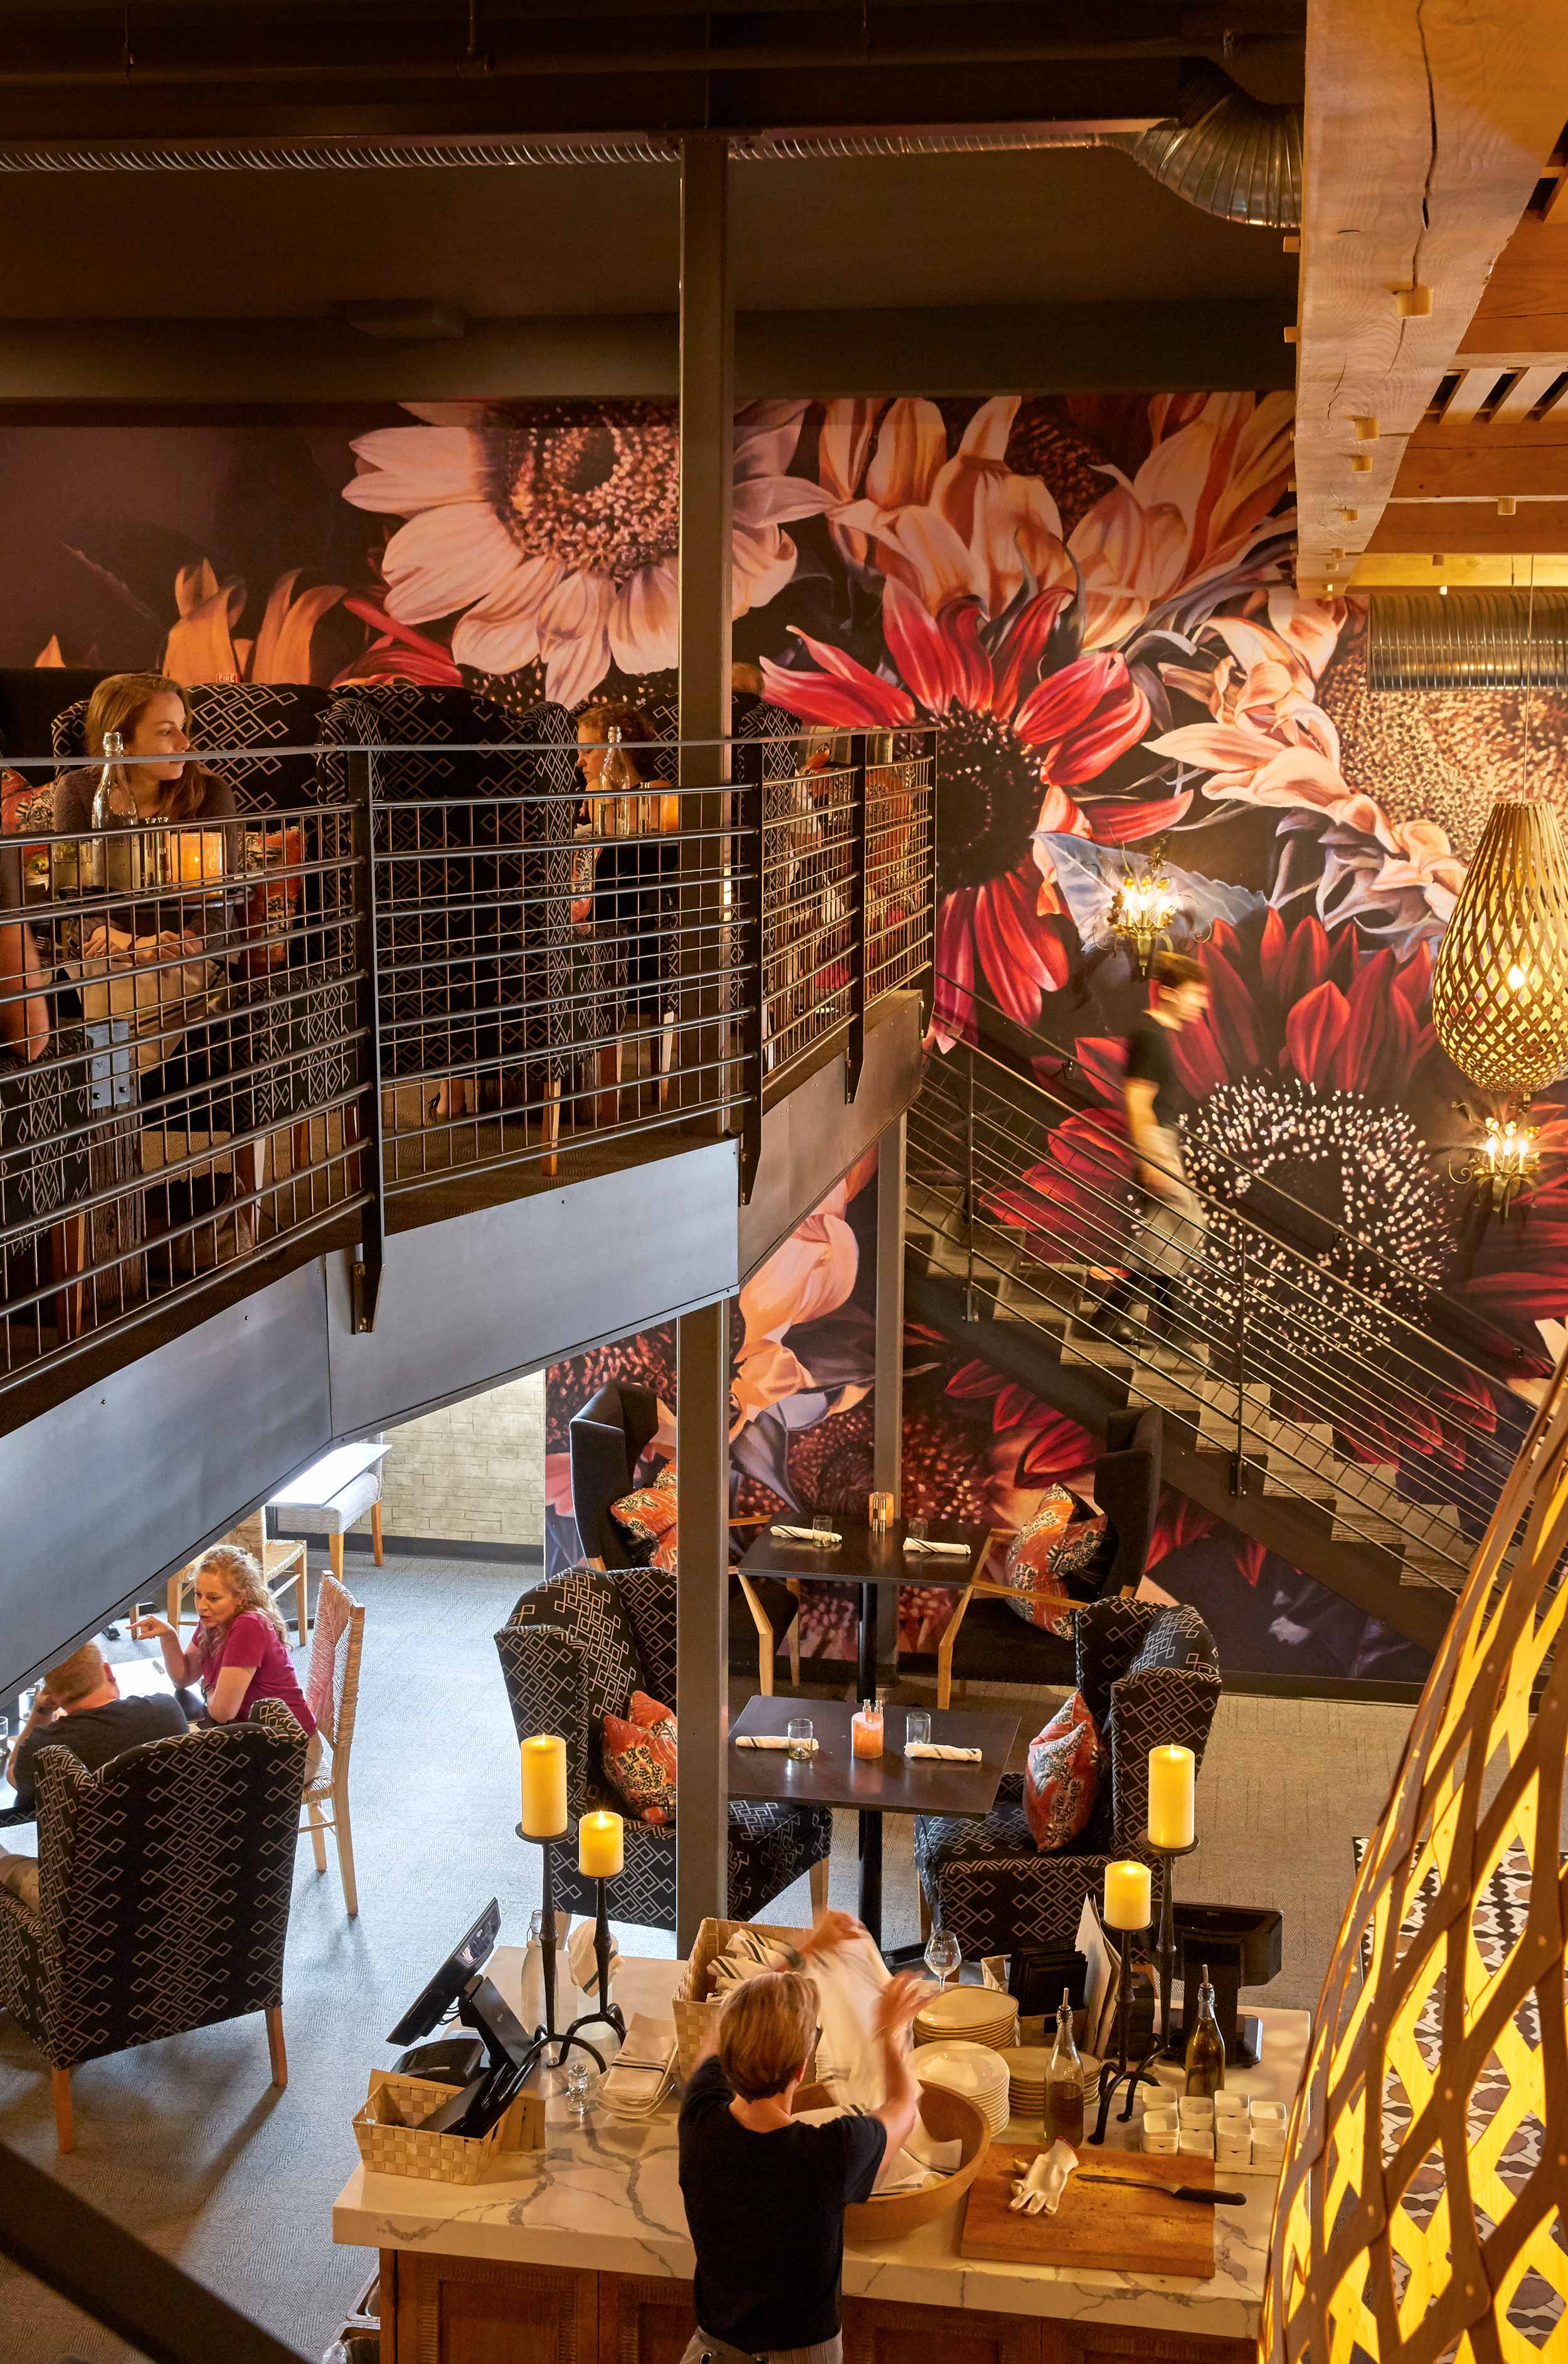 One of the two staircases accessing the mezzanine is flanked by a mural of over-sized sunflowers done in unexpectedly moody jewel tones.